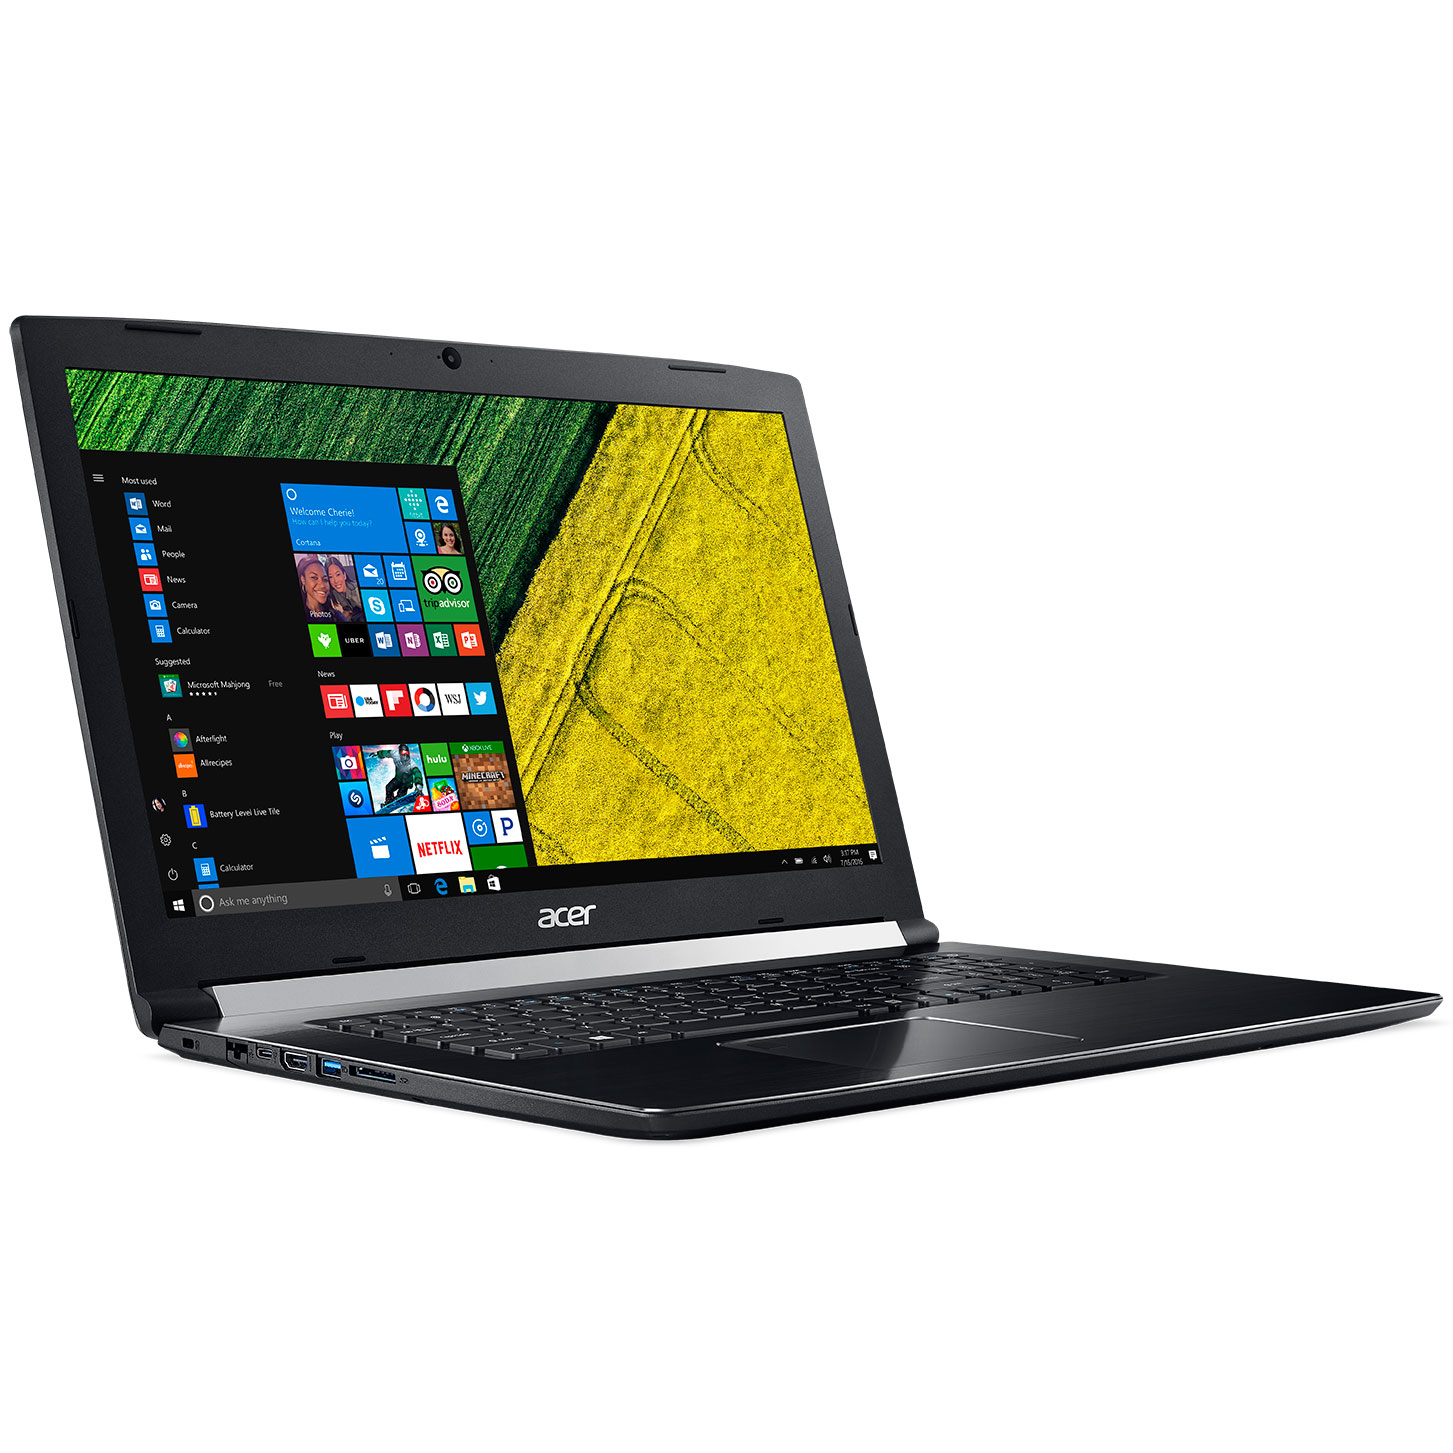 "PC portable Acer Aspire 7 A717-71G-584T Noir Intel Core i5-7300HQ 8 Go HDD 1 To 17.3"" LED Full HD NVIDIA GeForce GTX 1050 2 Go Wi-Fi AC/Bluetooth Webcam Windows 10 Famille 64 bits"